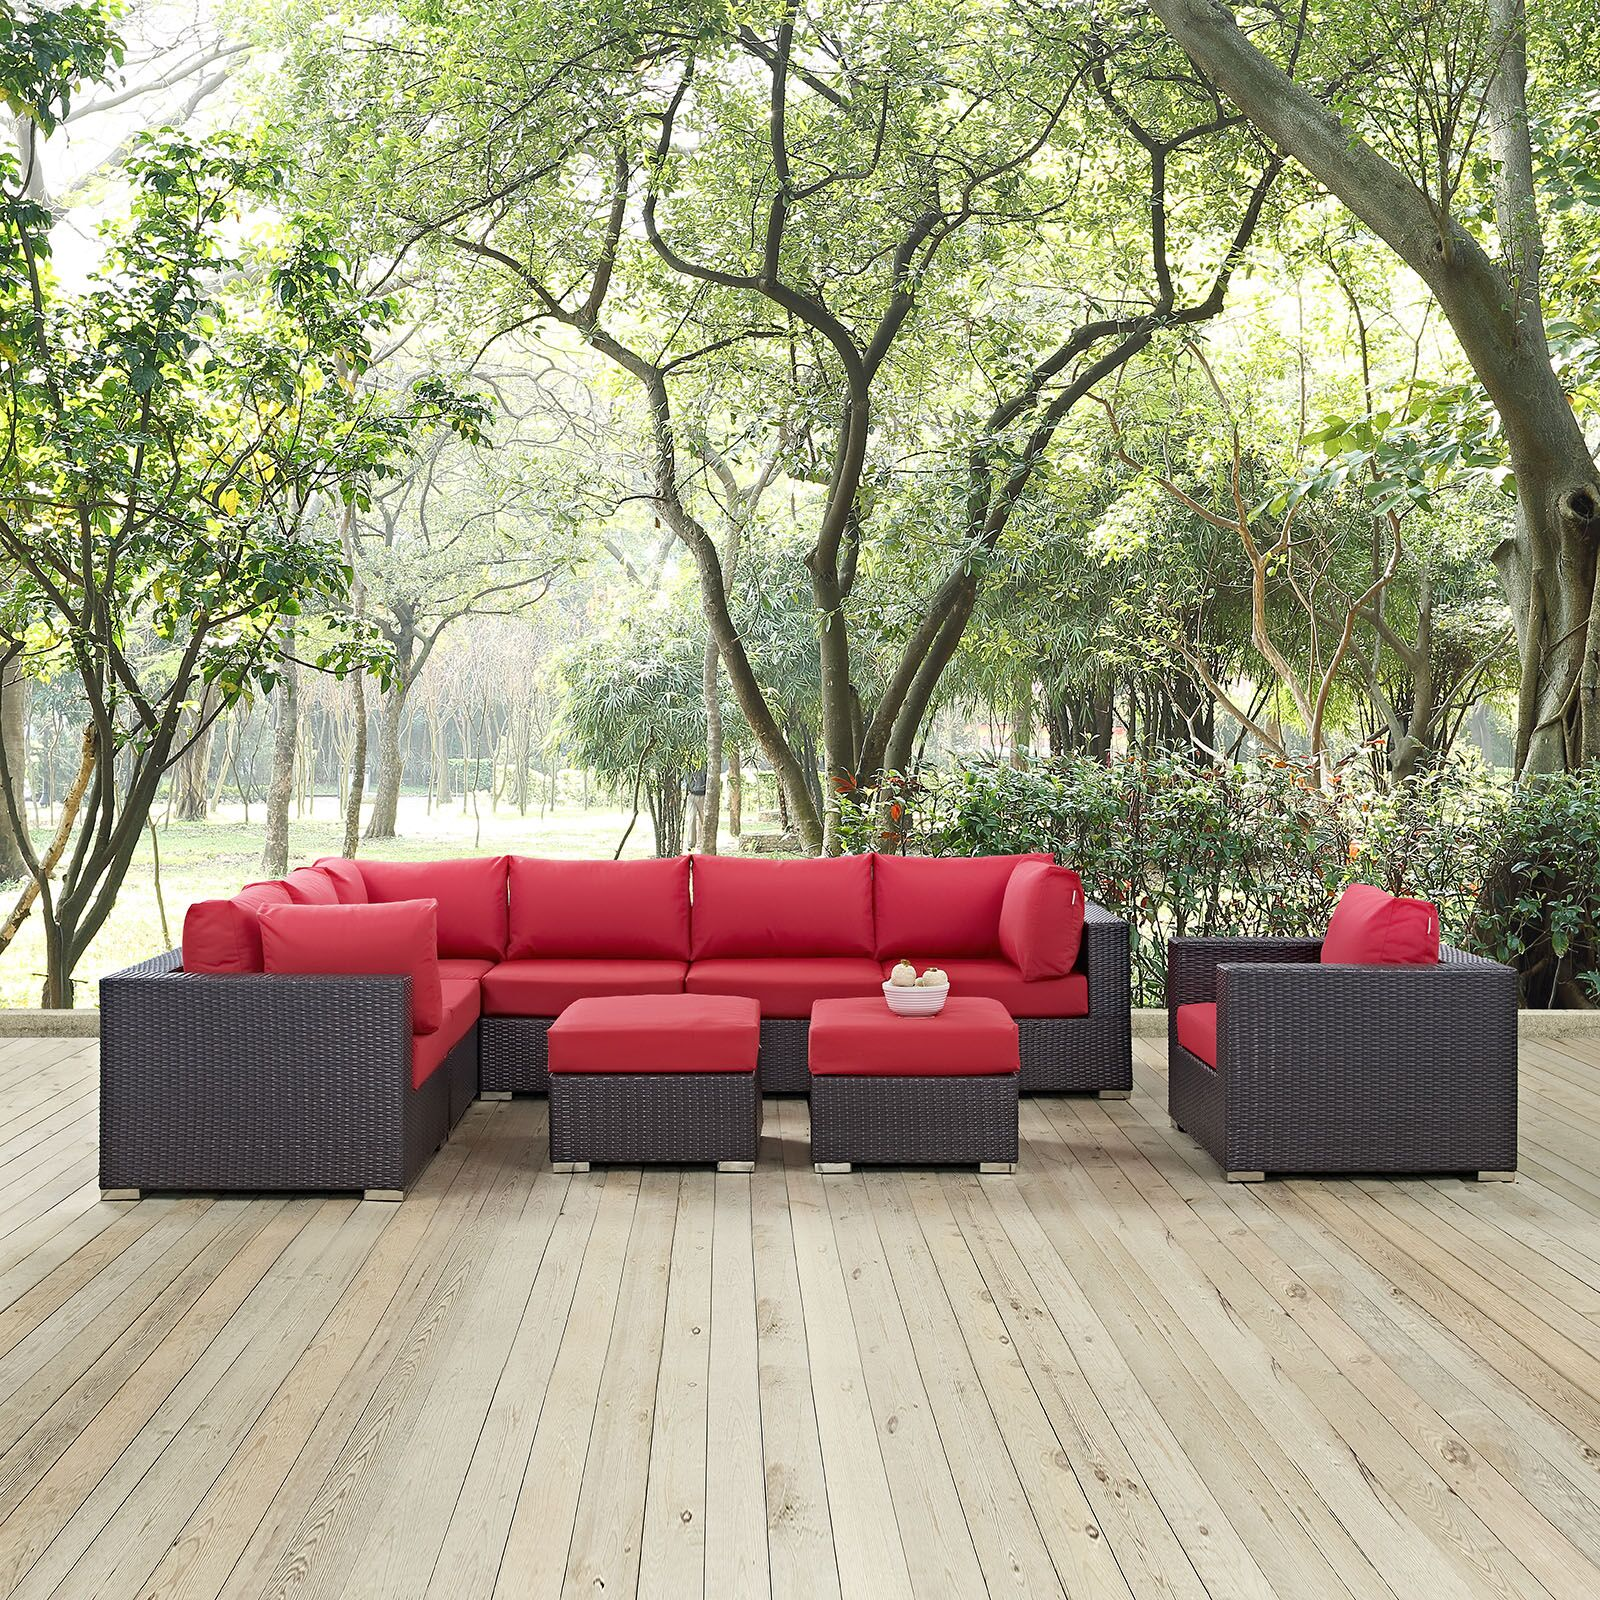 Ryele 9 Piece Rattan Sectional Set with Cushions Fabric: Espresso Red